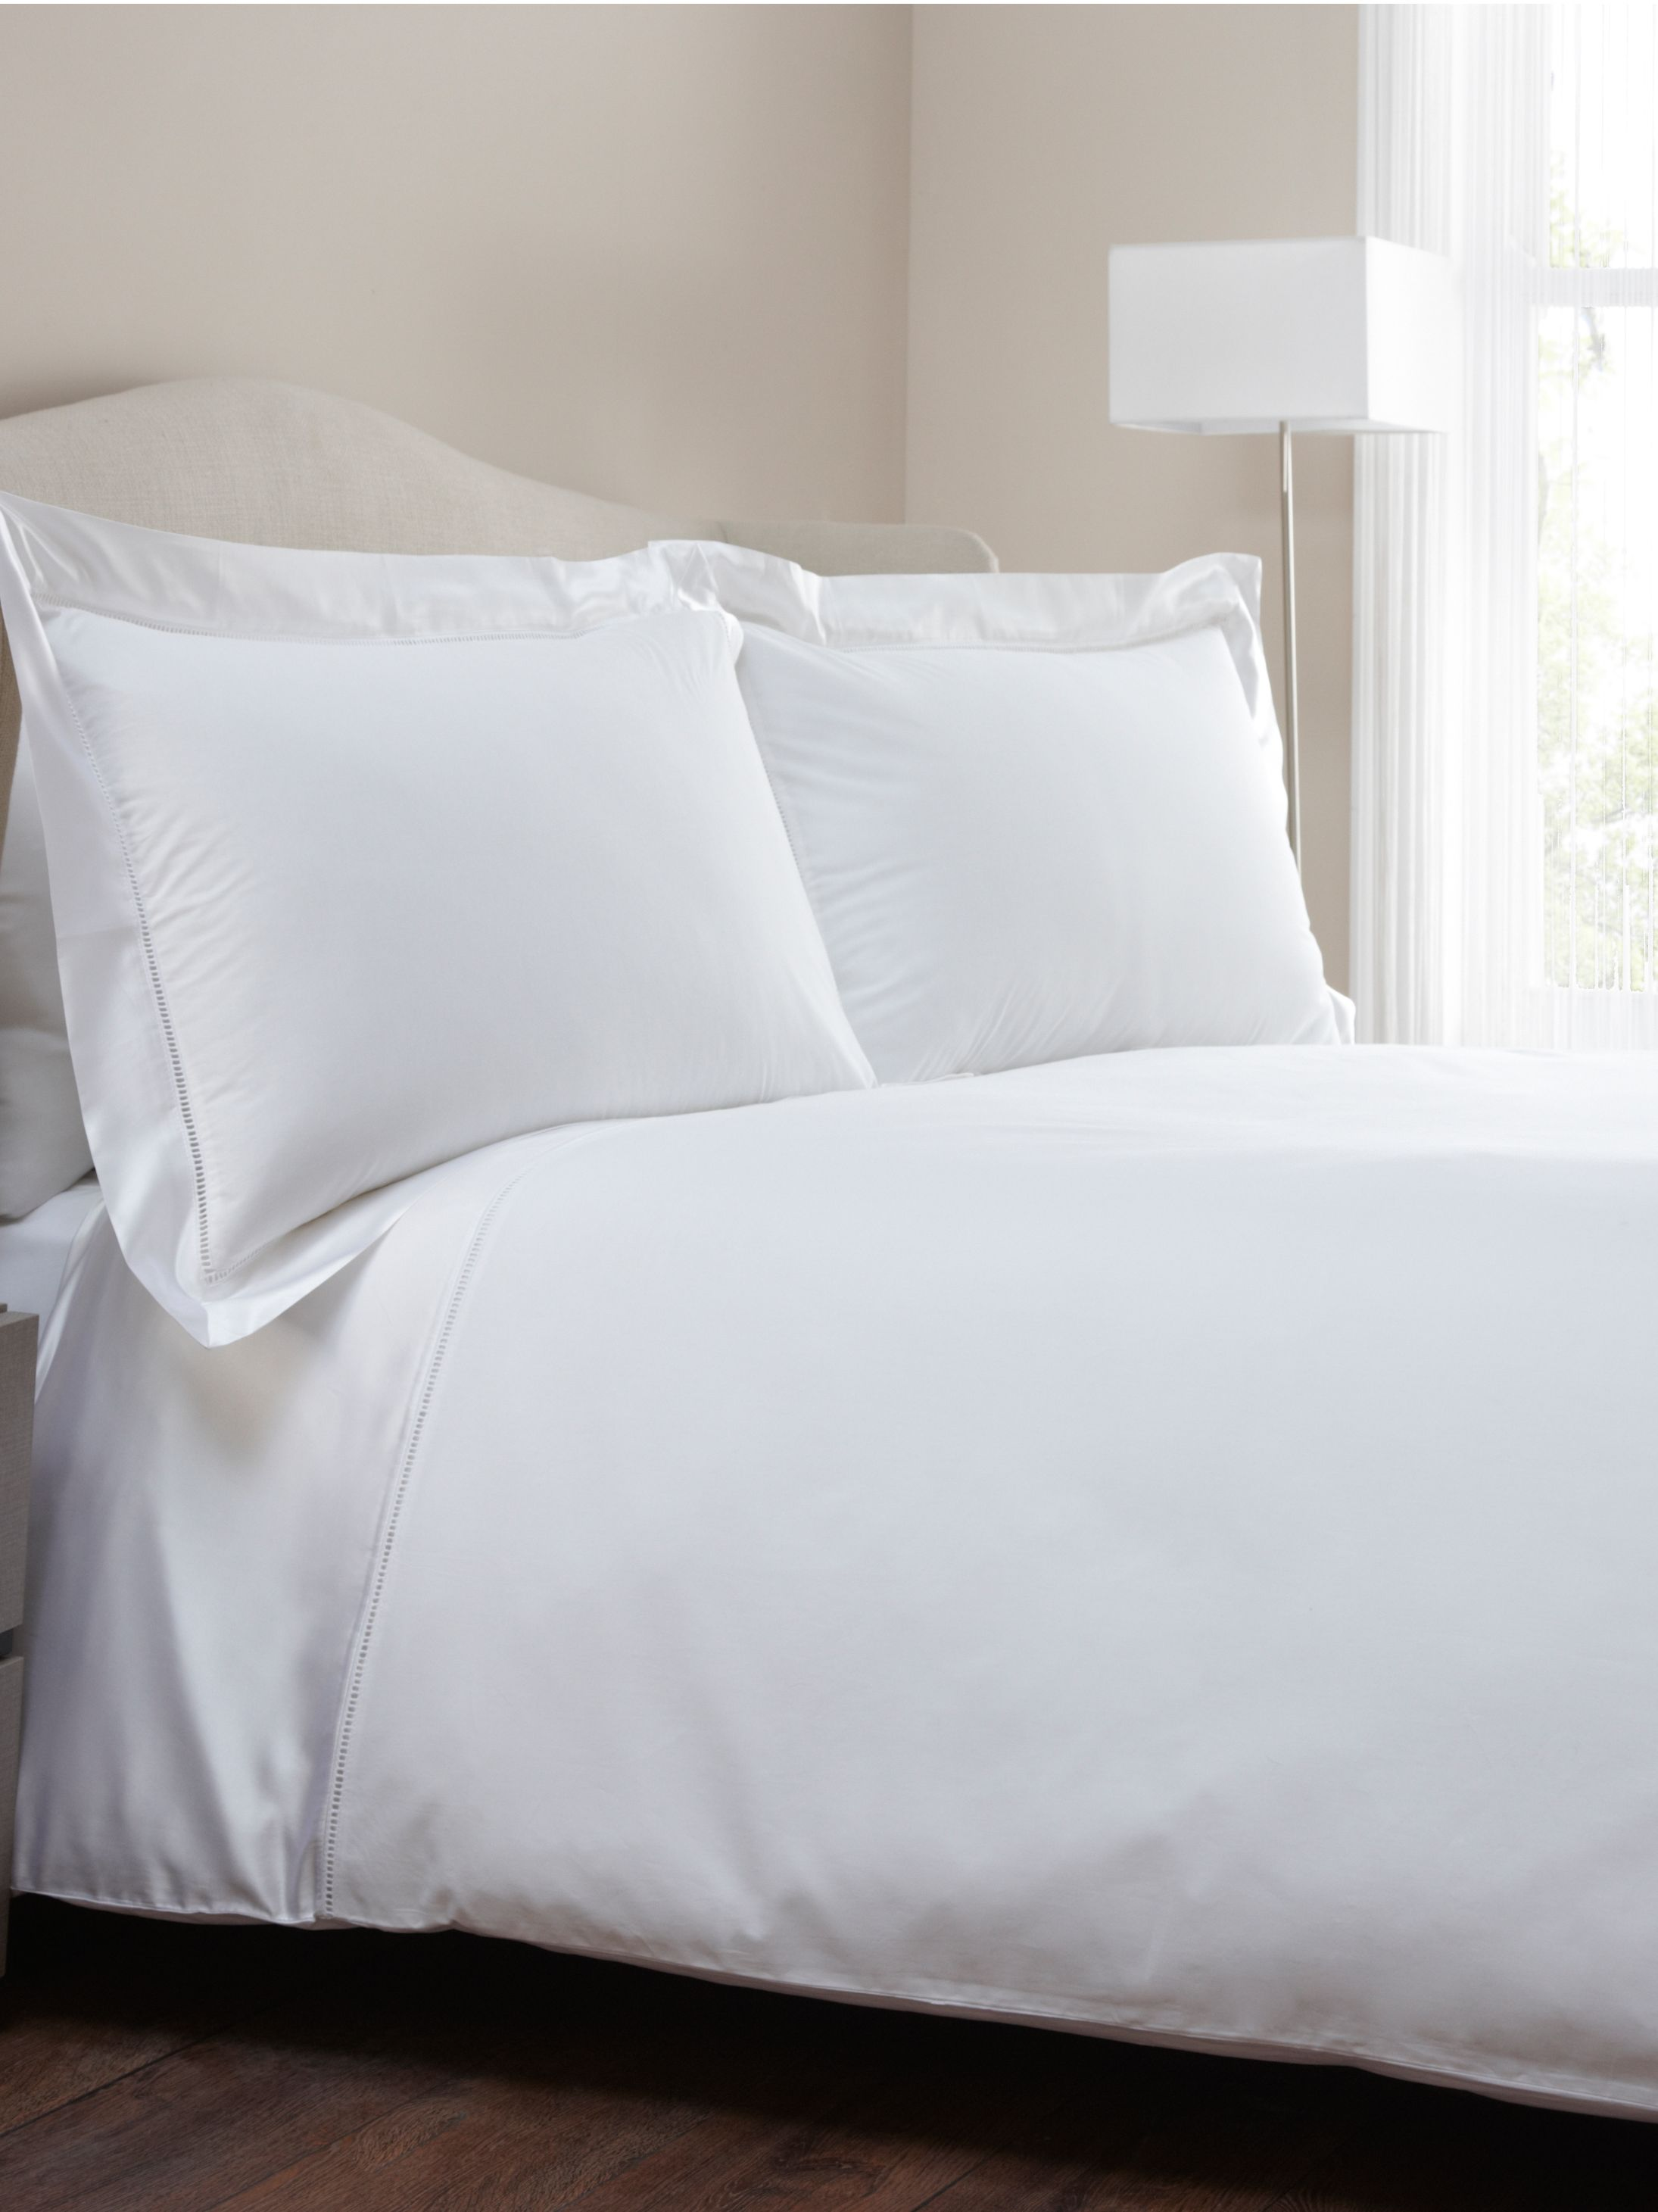 Berwick king duvet cover white